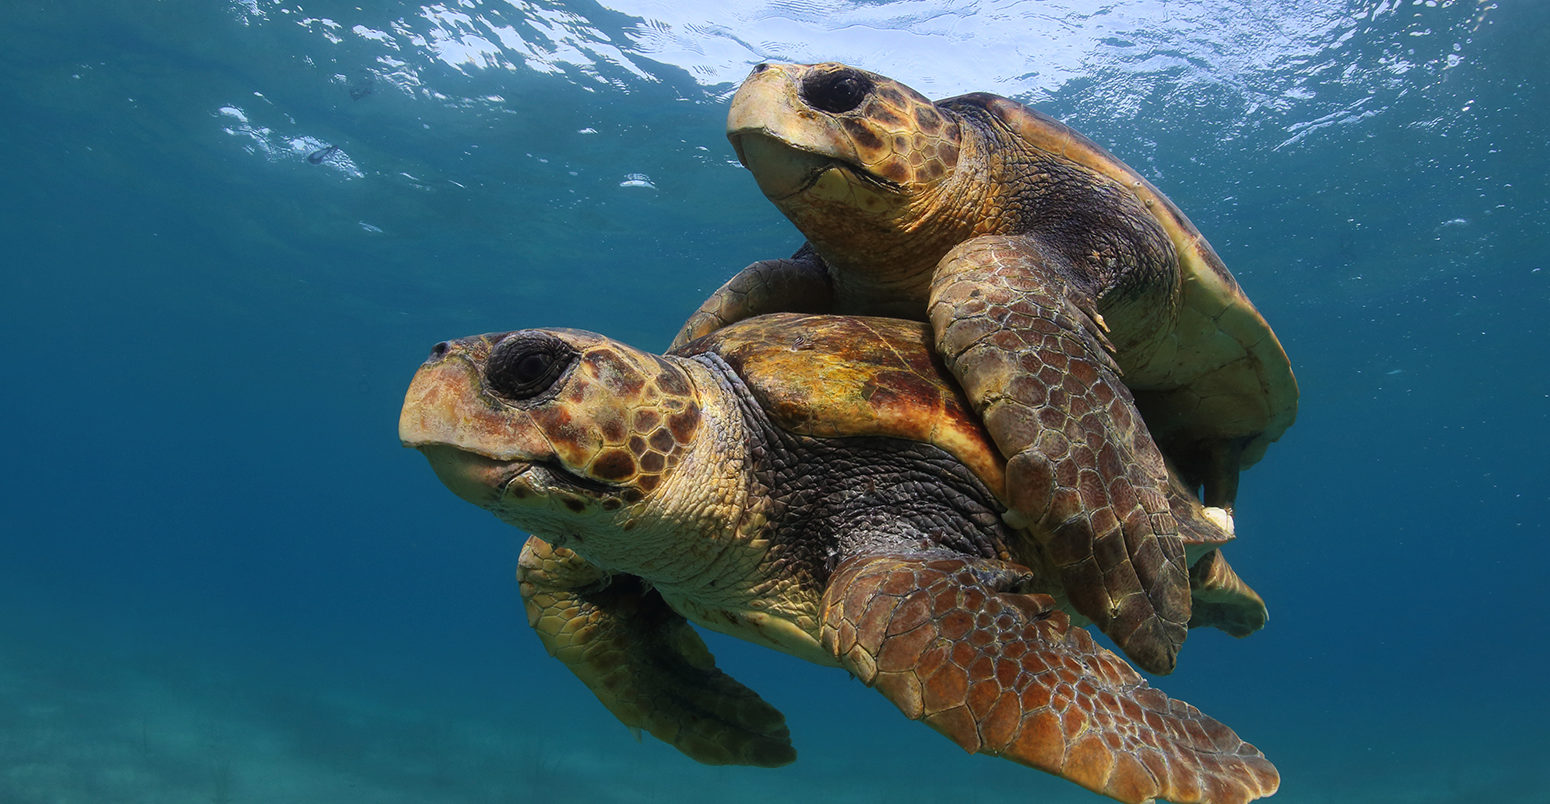 Help to Save the Sea Turtles in Costa Rica: Be a Volunteer